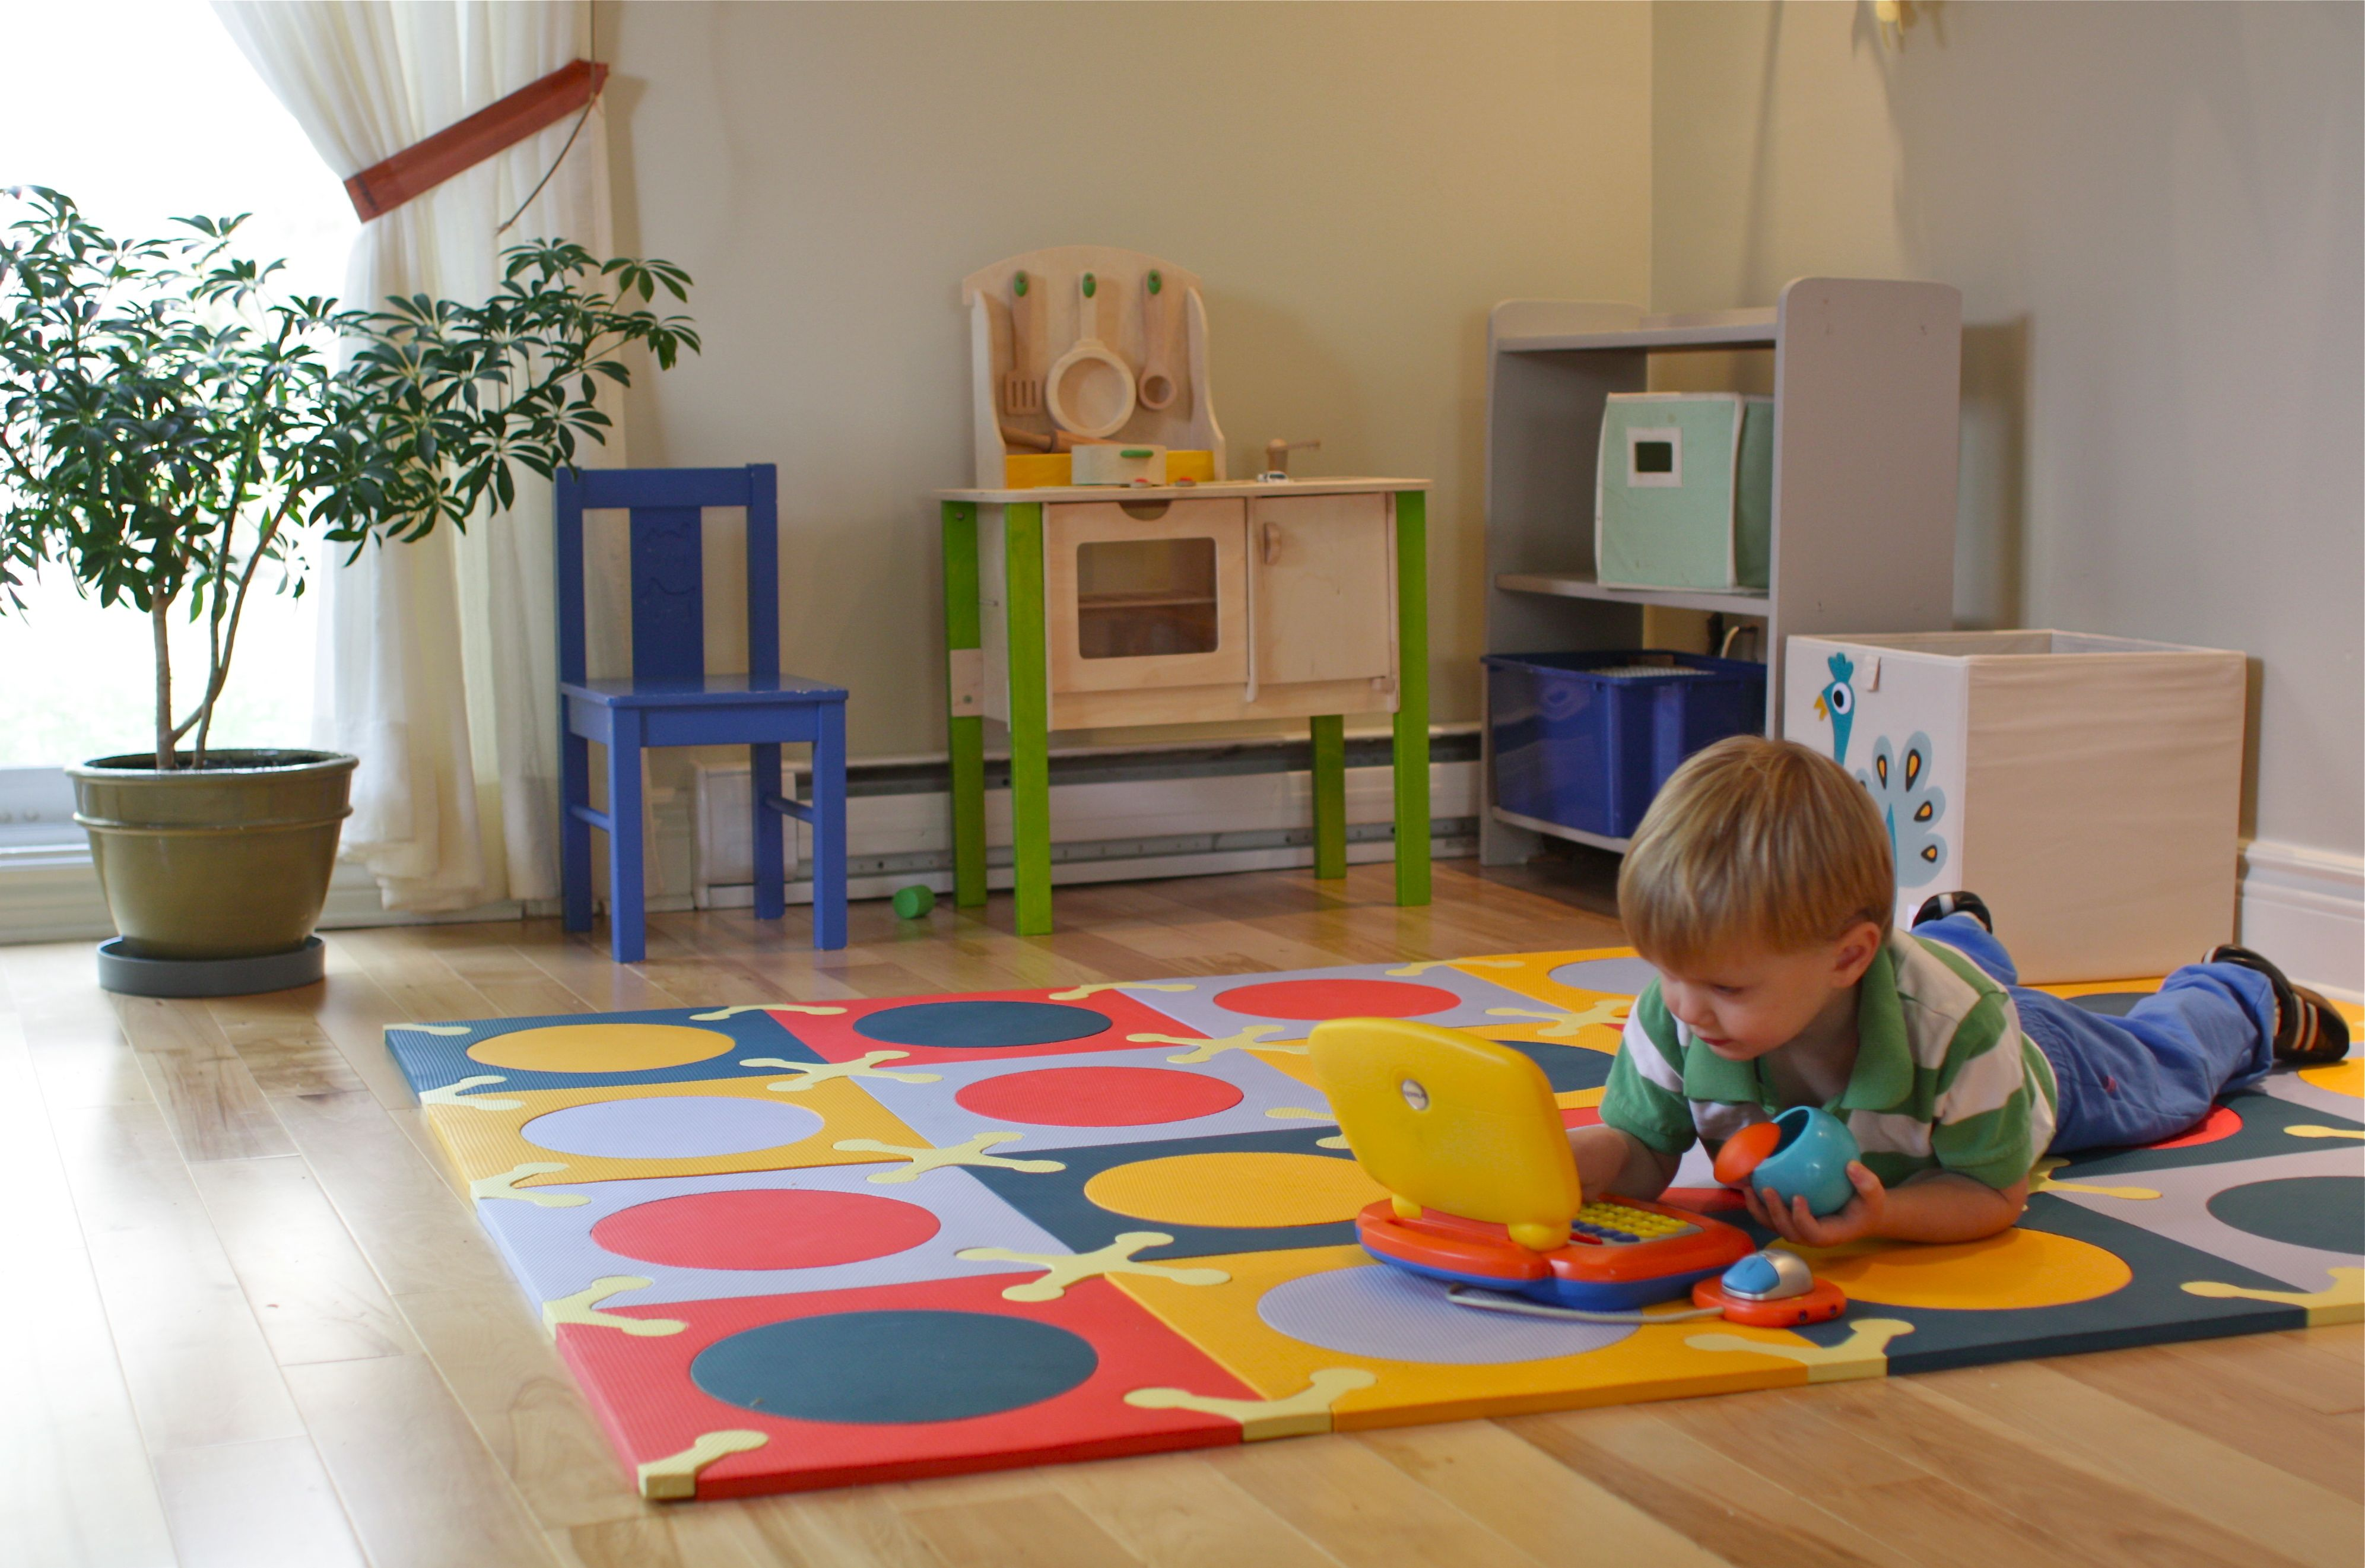 Kids Play Room Giveaway For Kids Dishes Playroom Fun More From Mortimer